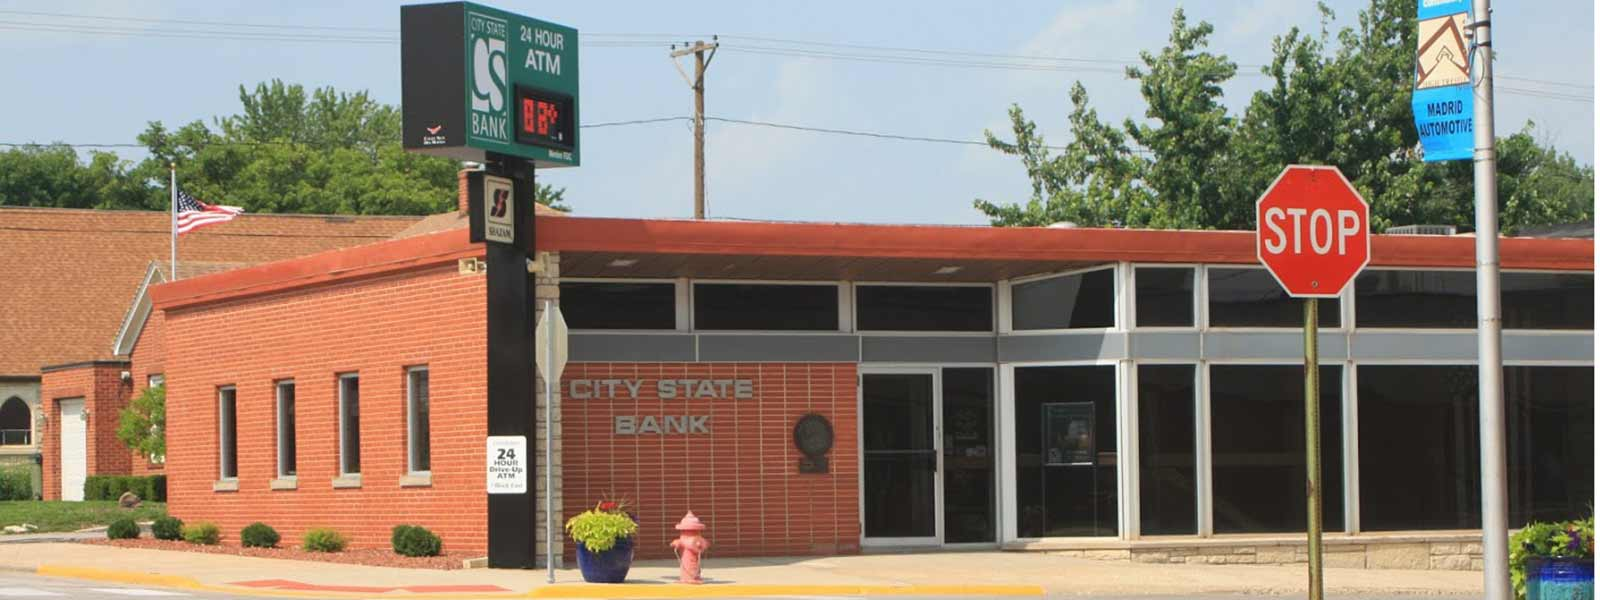 City_State_Bank